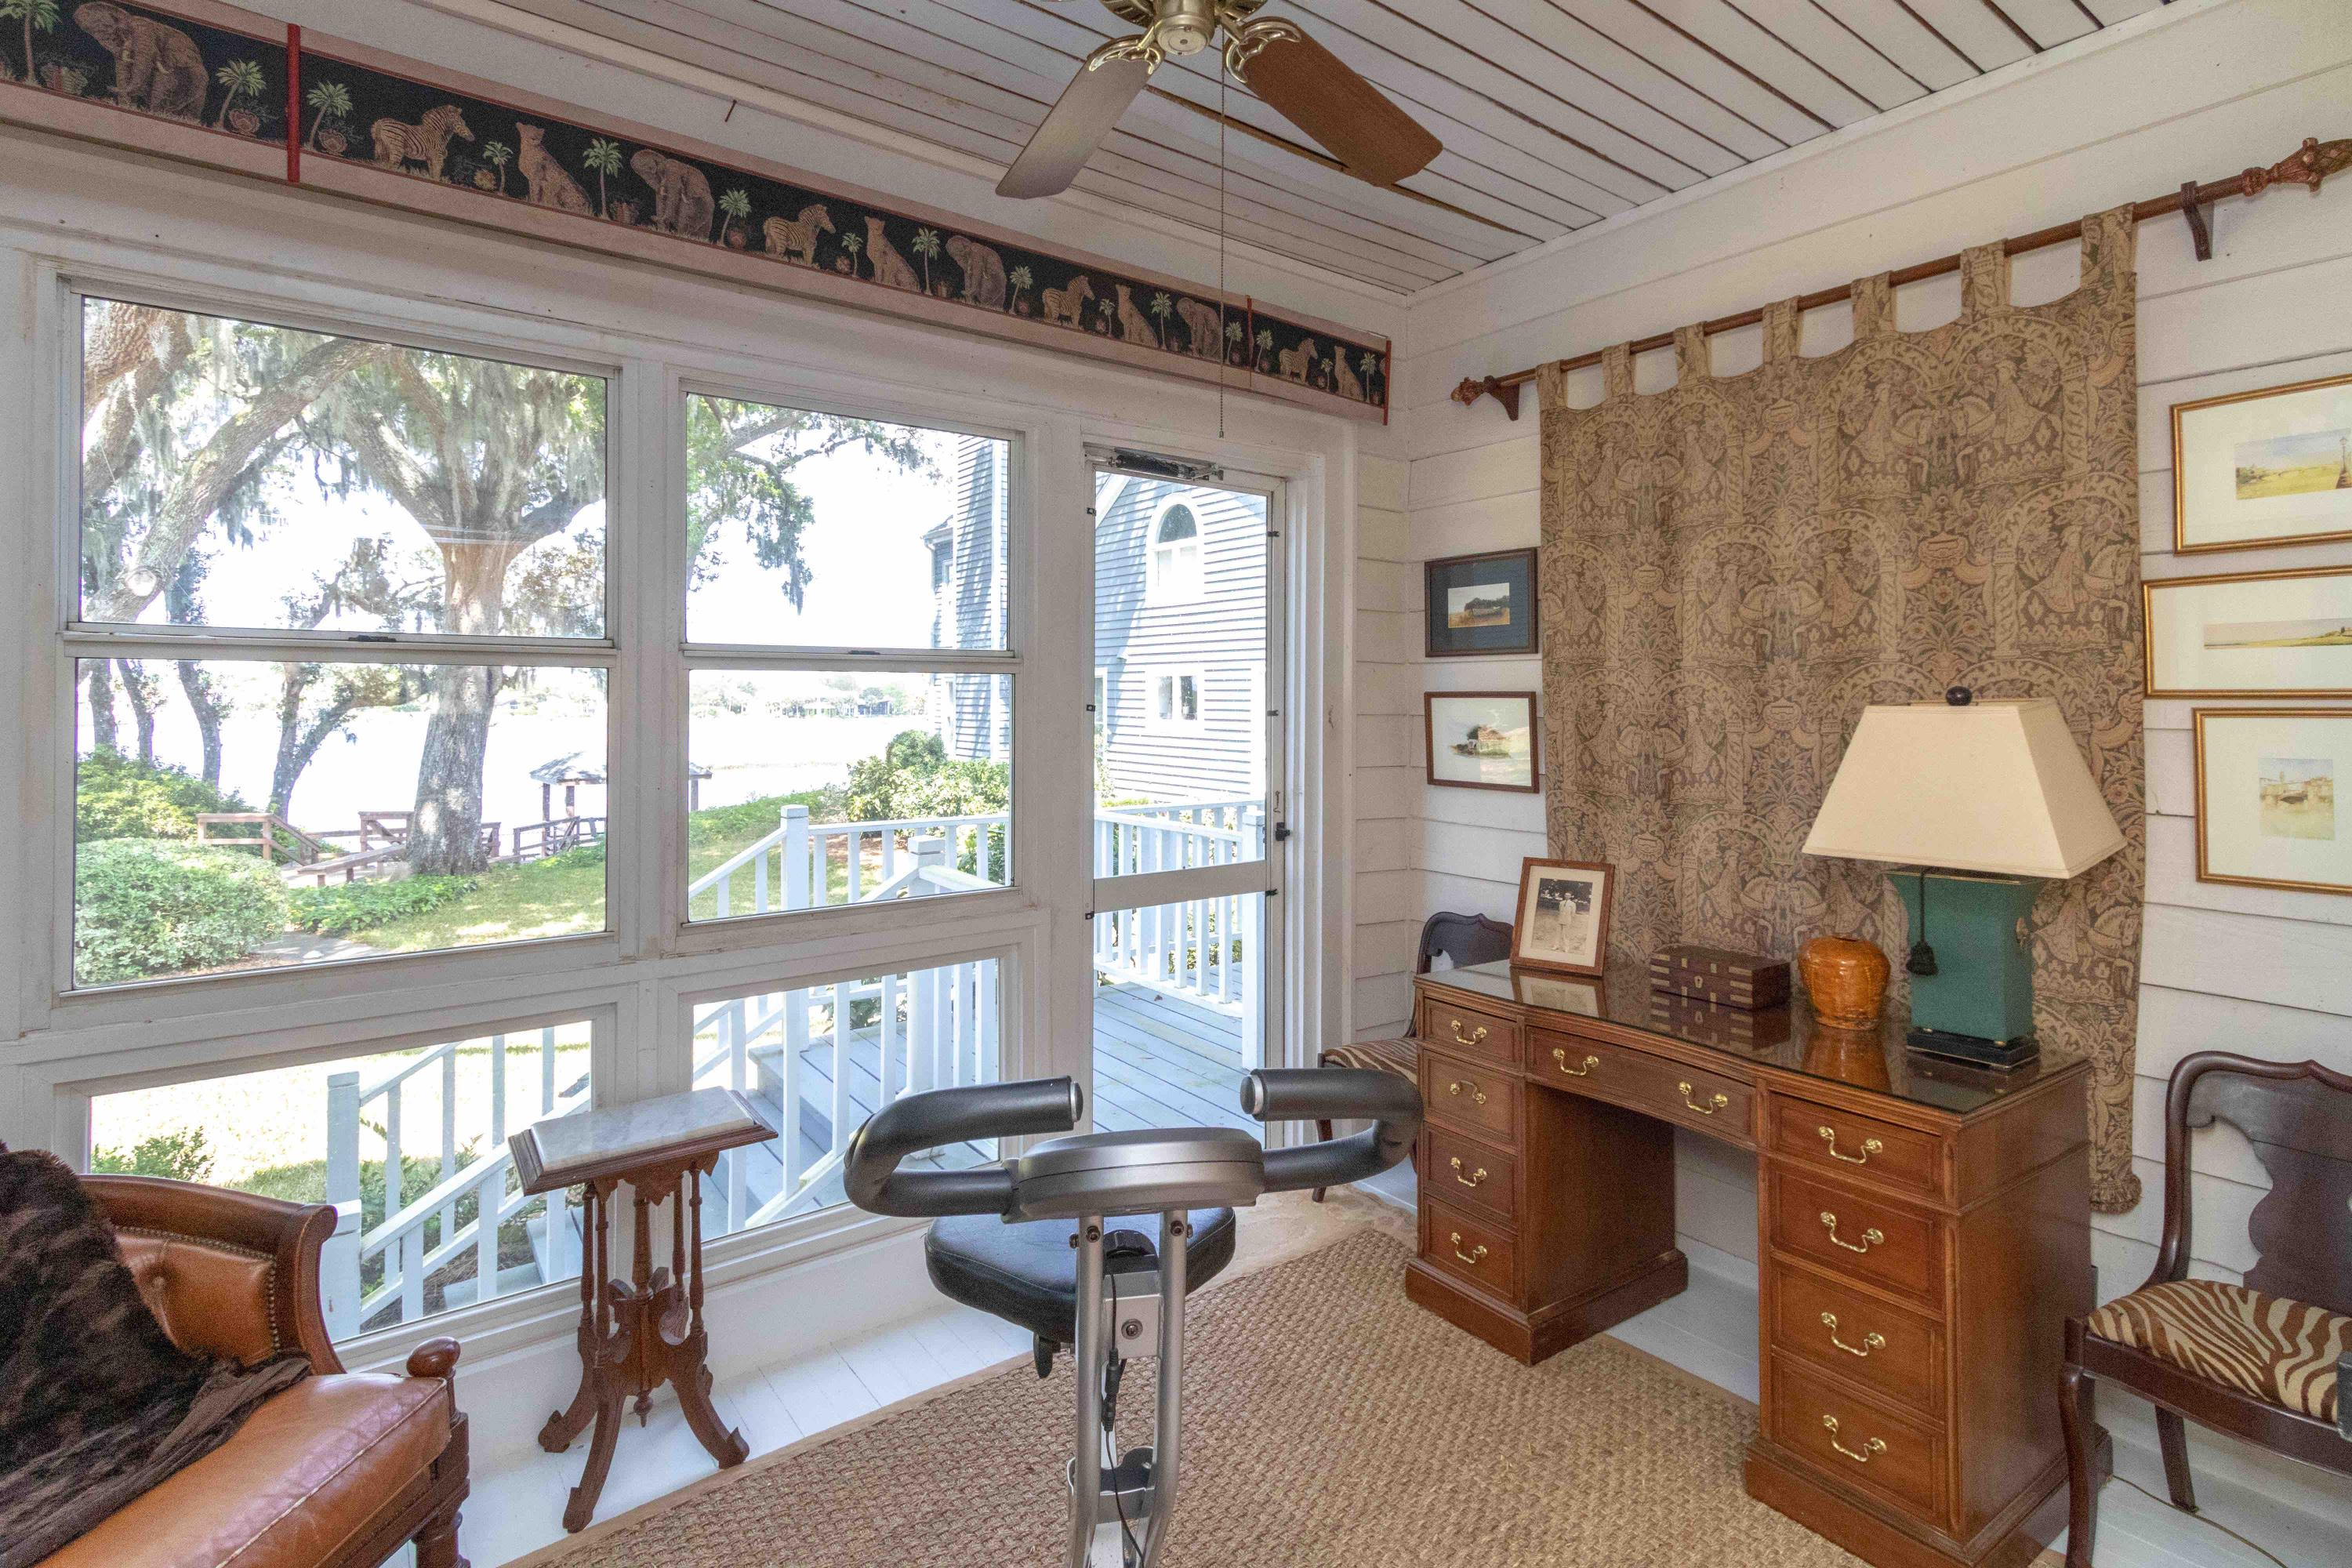 Waterfront Plantation Homes For Sale - 107 Waterfront Plantation, Charleston, SC - 5